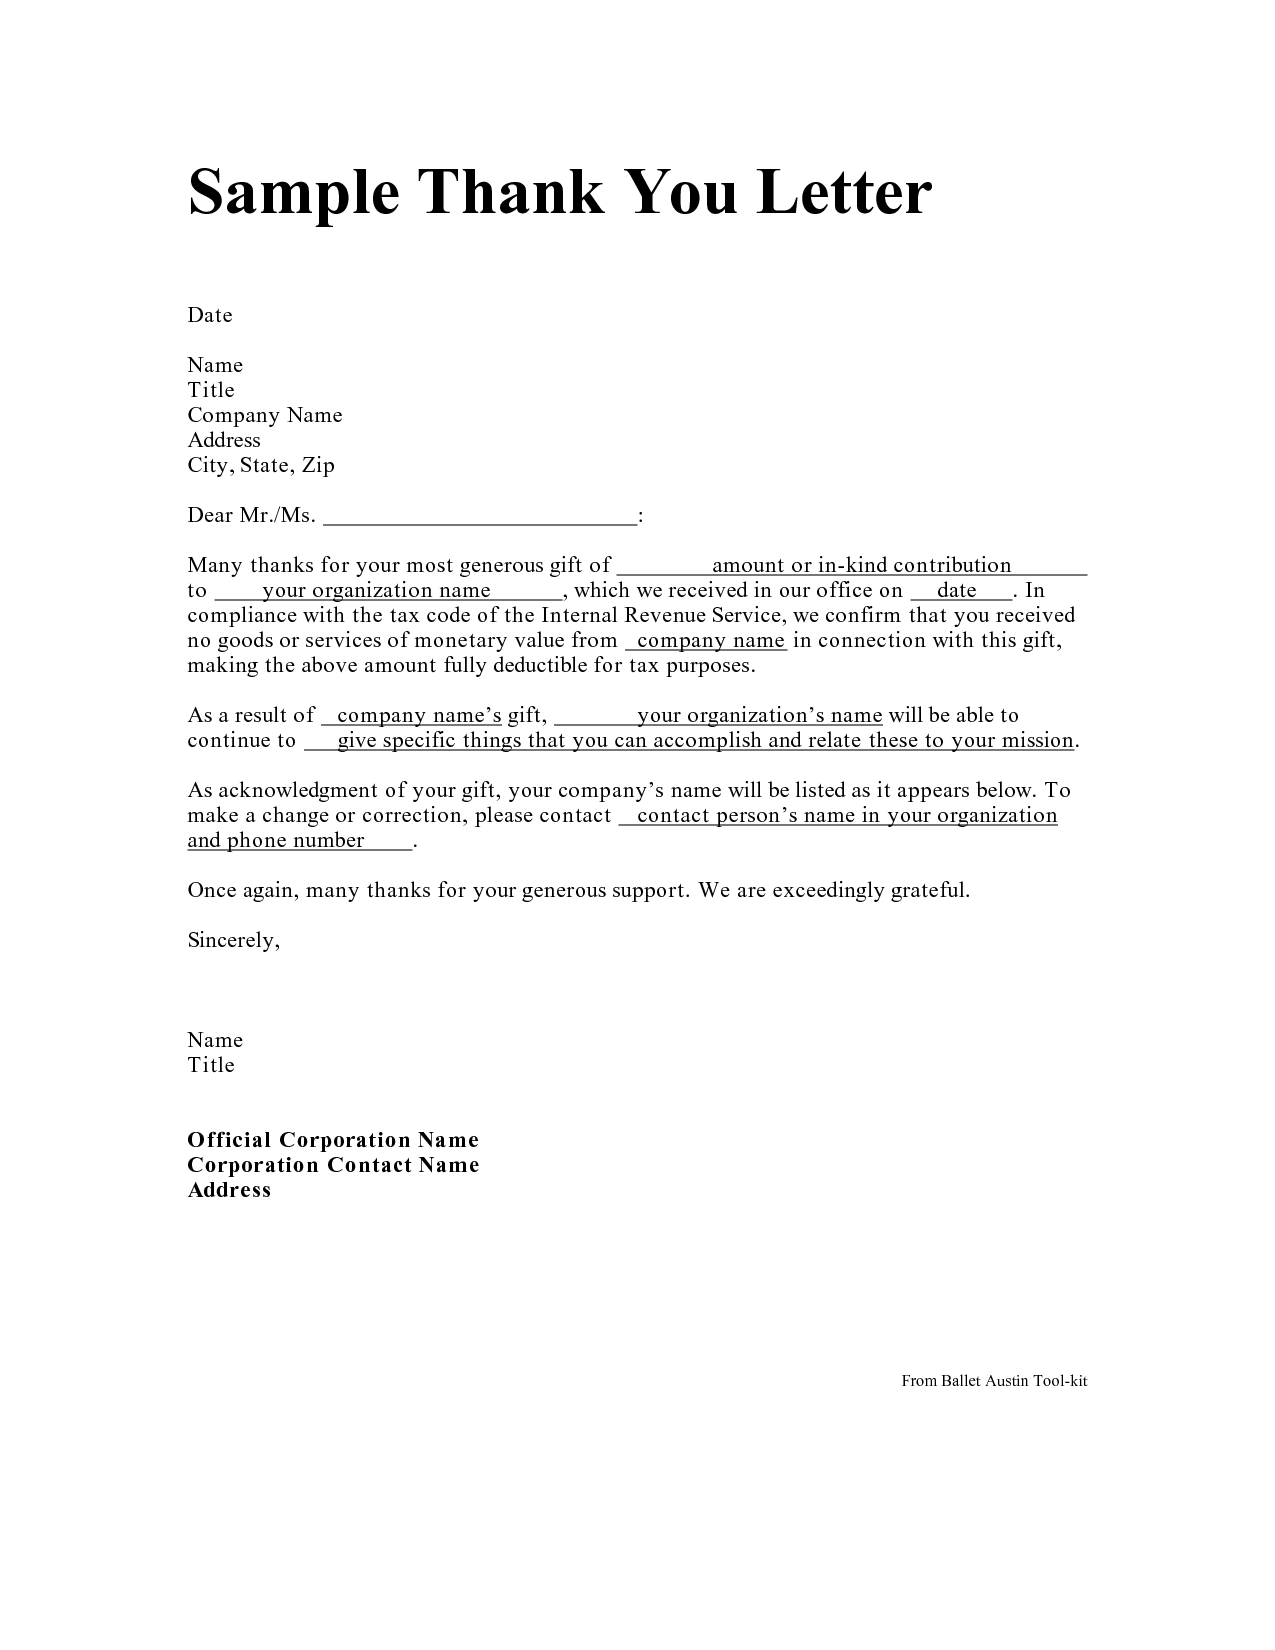 Scholarship Thank You Letter Template - Personal Thank You Letter Personal Thank You Letter Samples